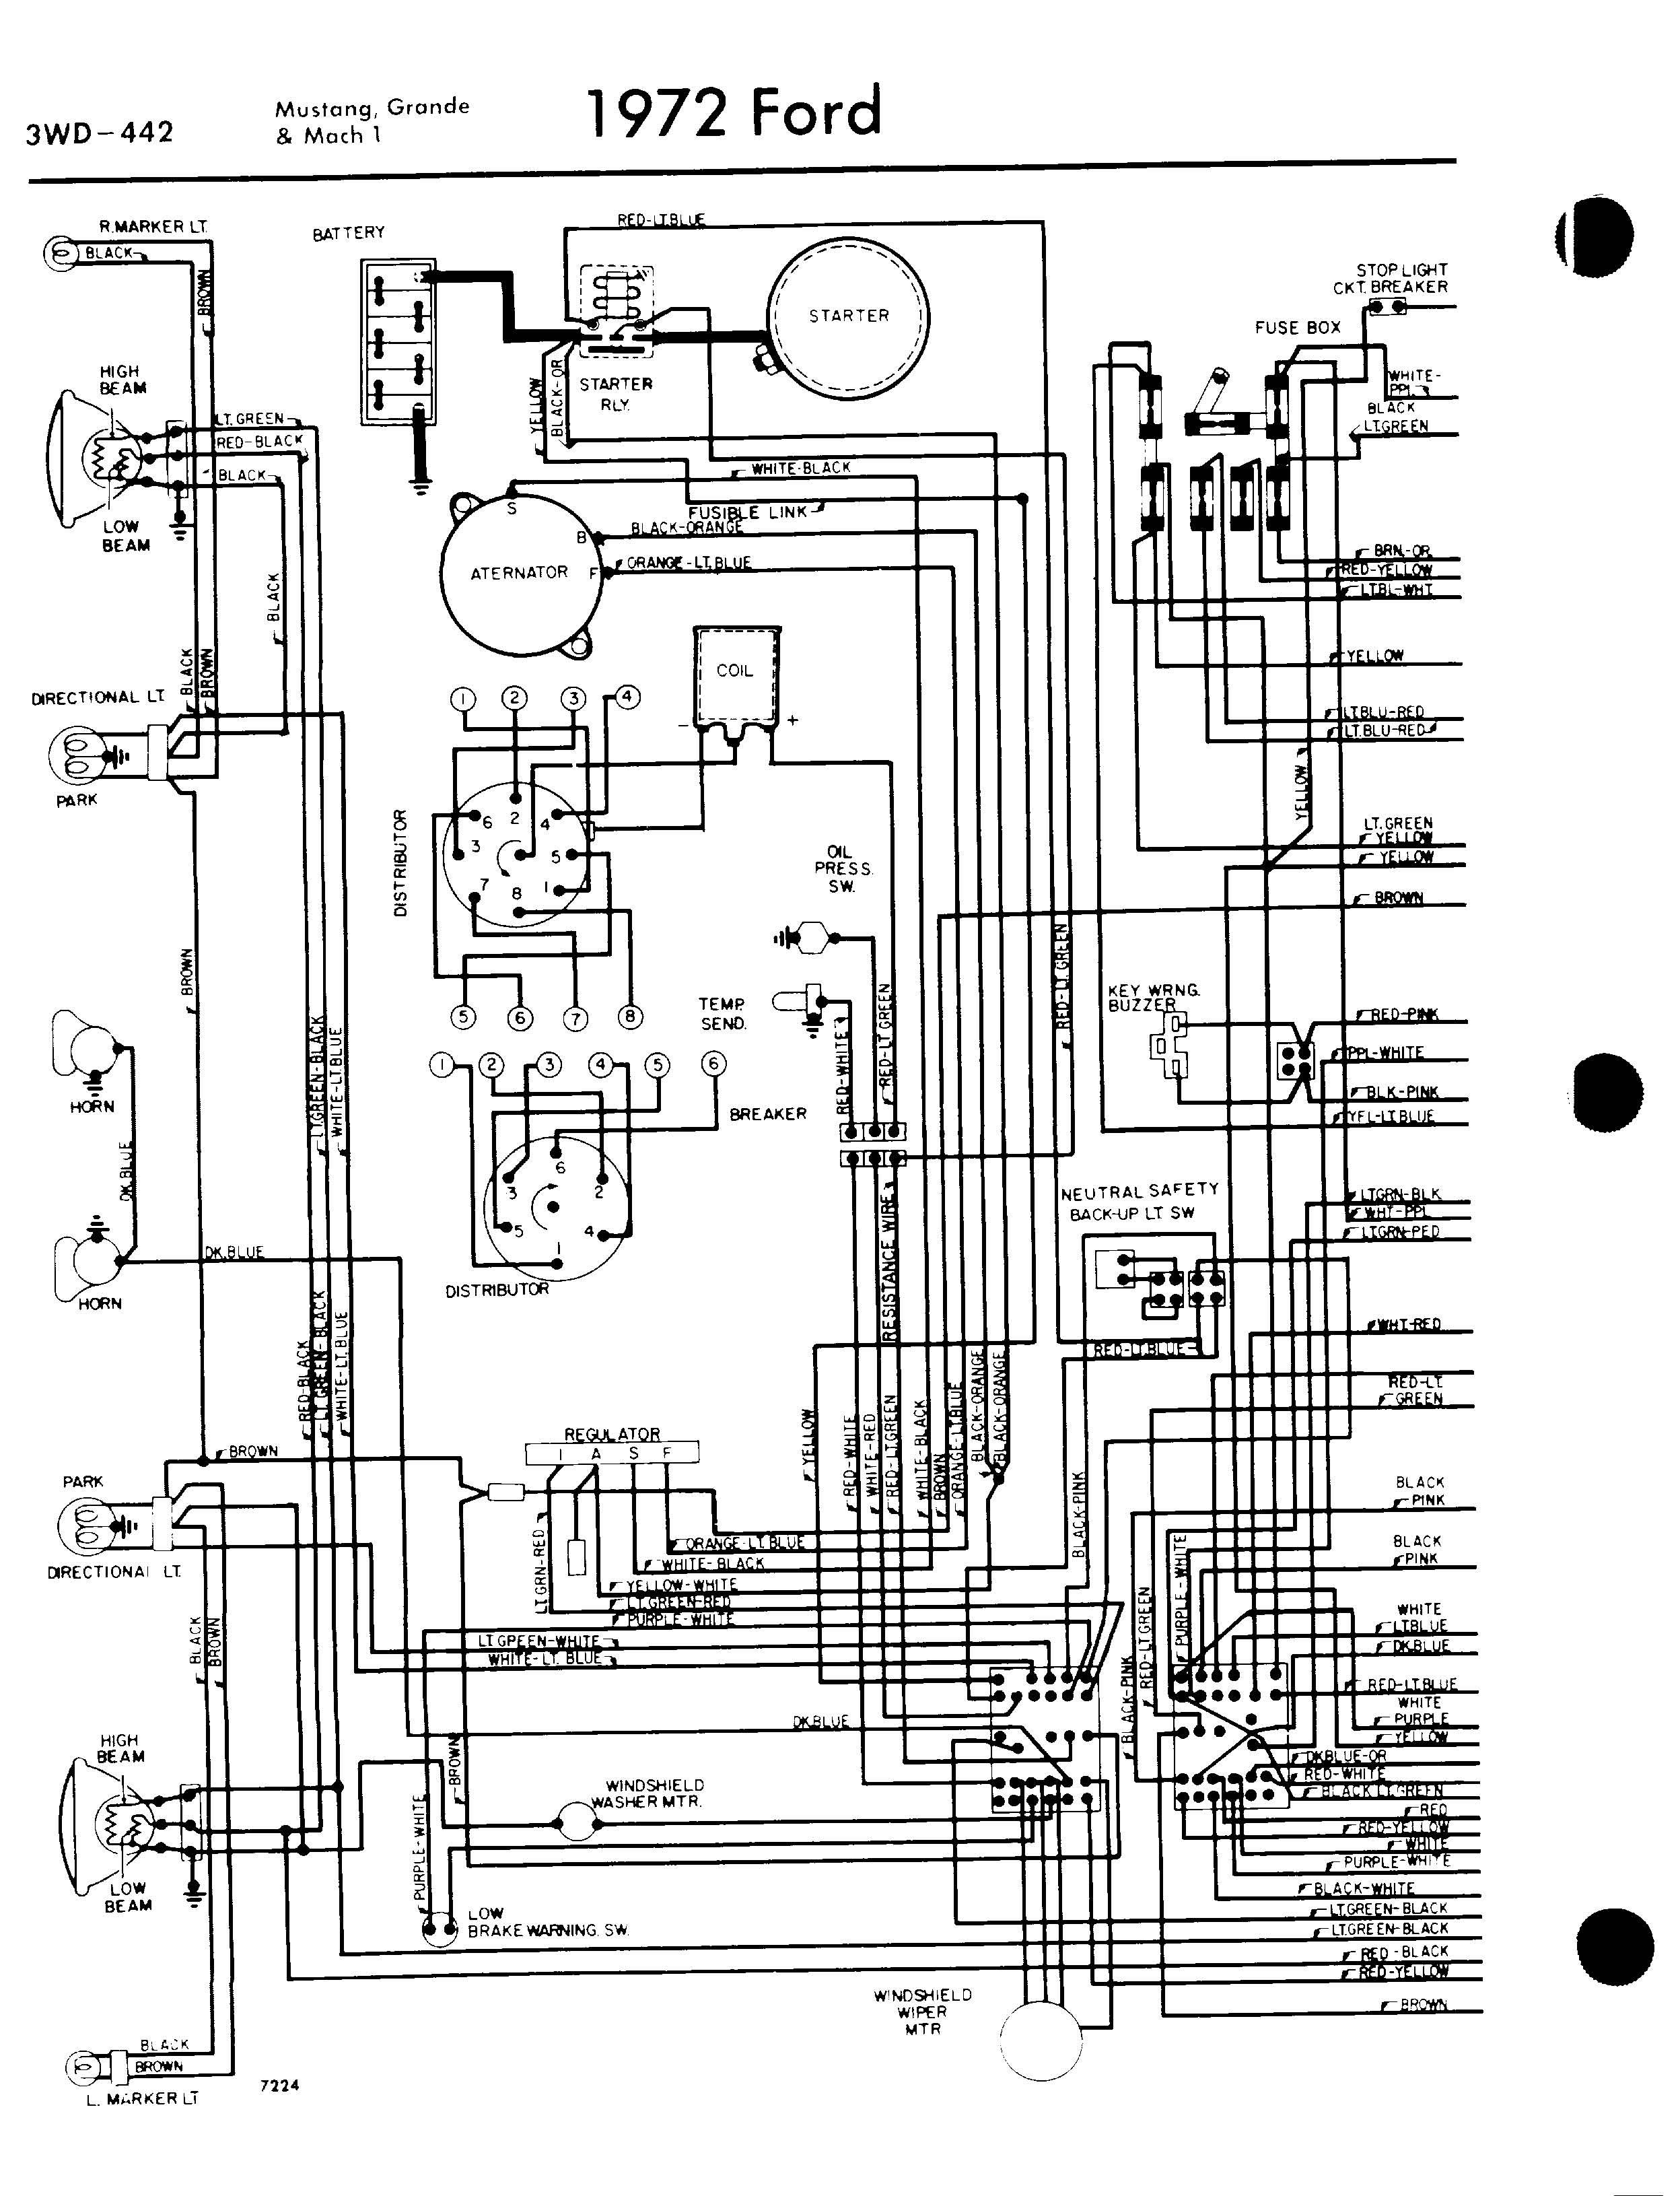 ford mustang wiring diagram also 1969 mustang headlight